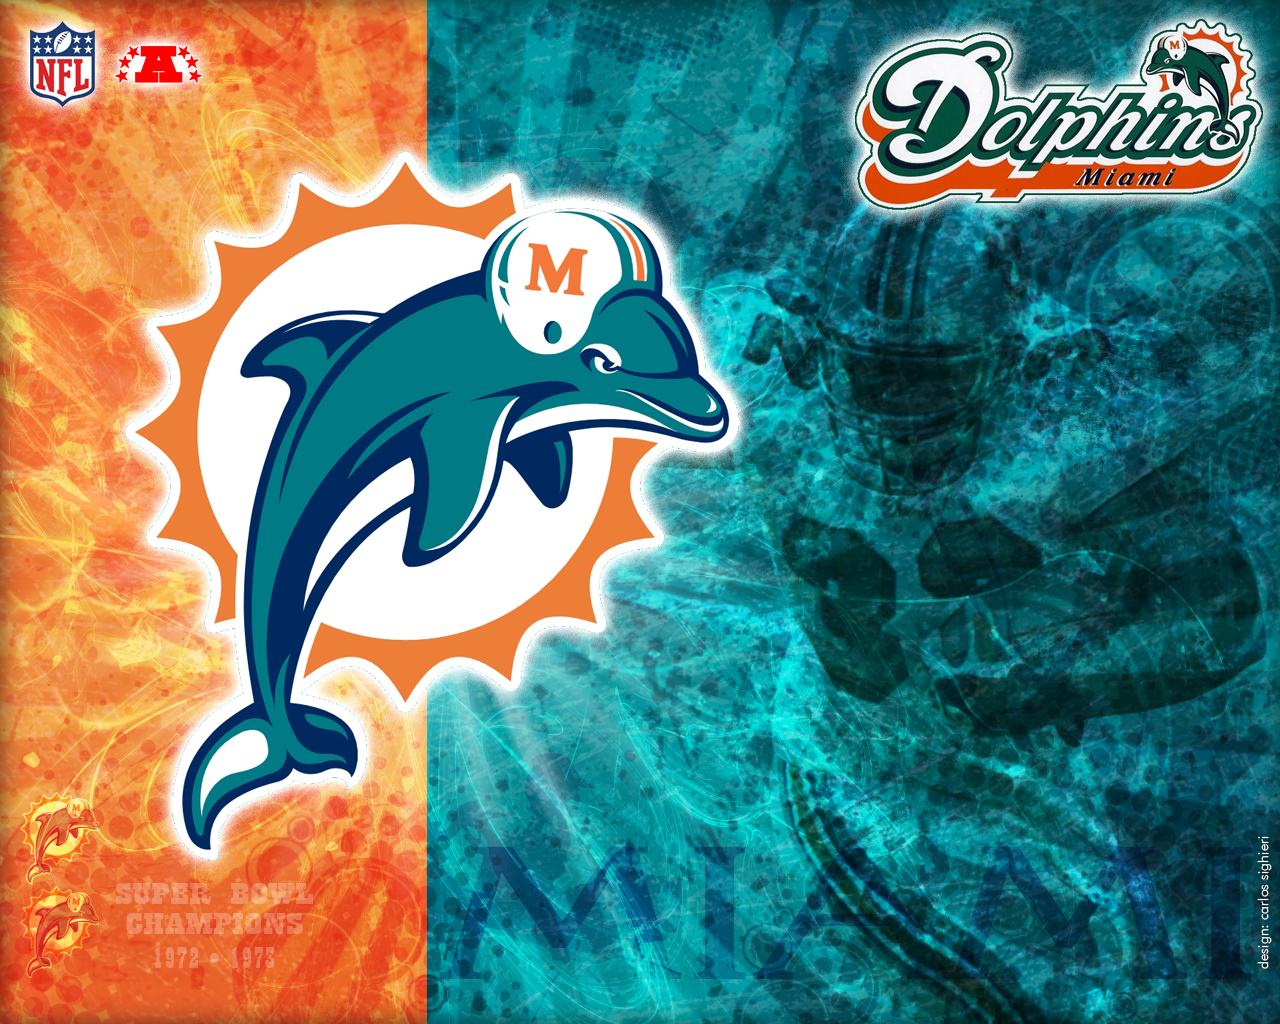 Miami Dolphins wallpaper images Miami Dolphins wallpapers 1280x1024